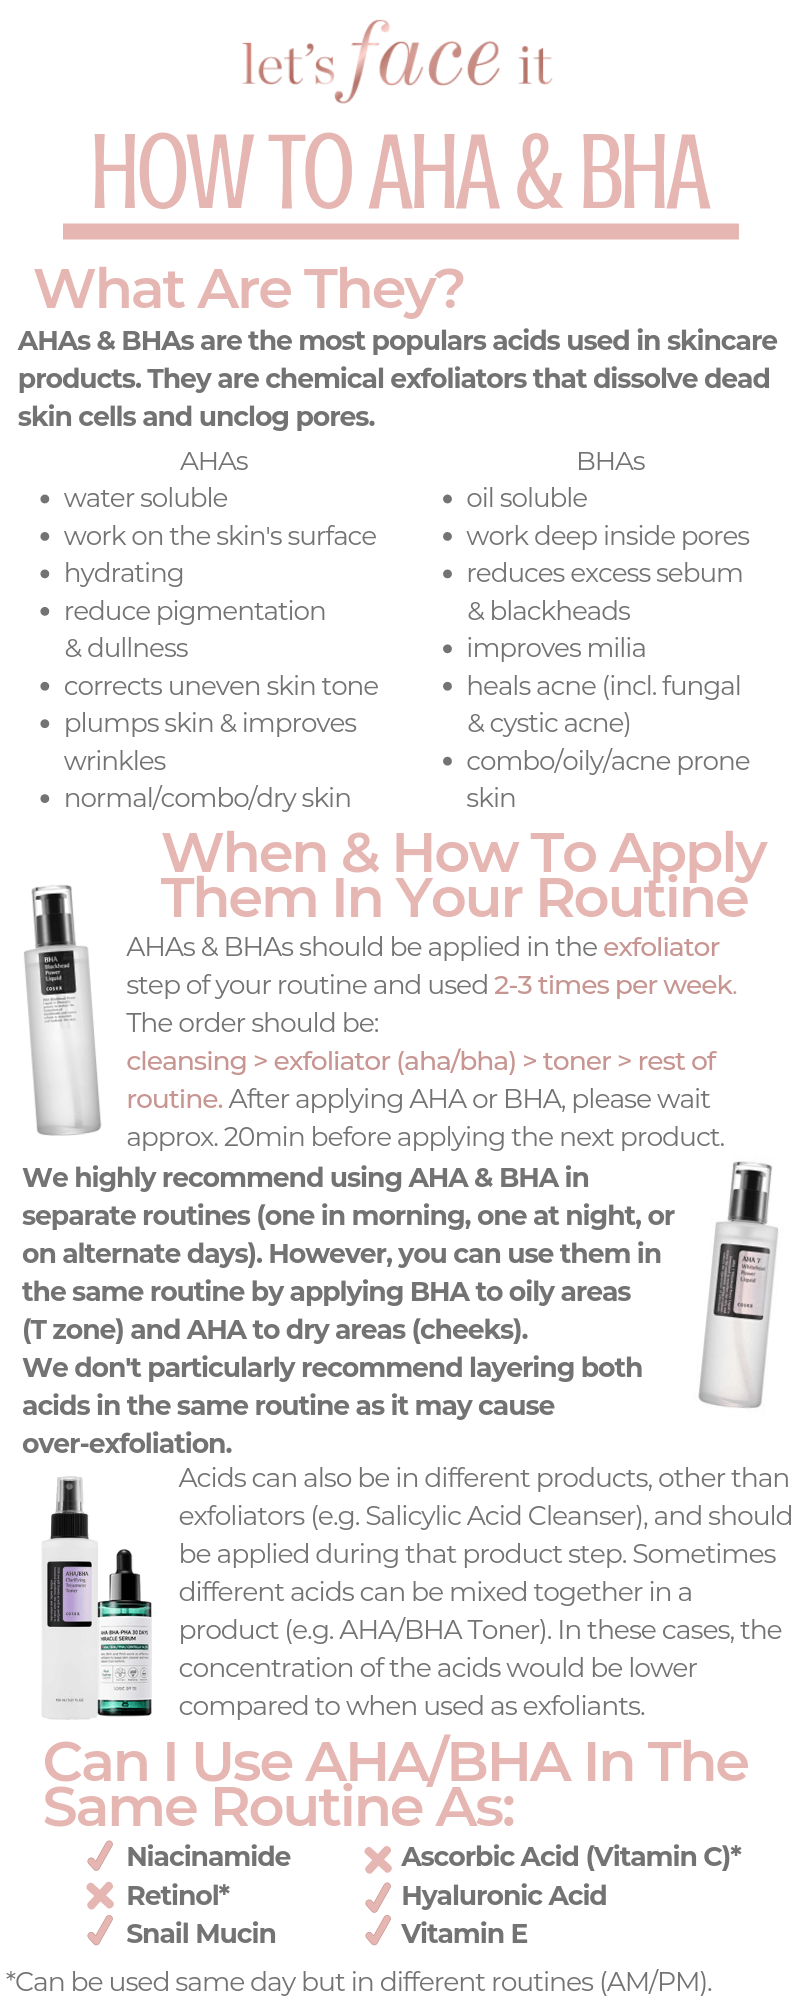 K Beauty Tips: How To Use AHA/BHA In Your Skincare Routine